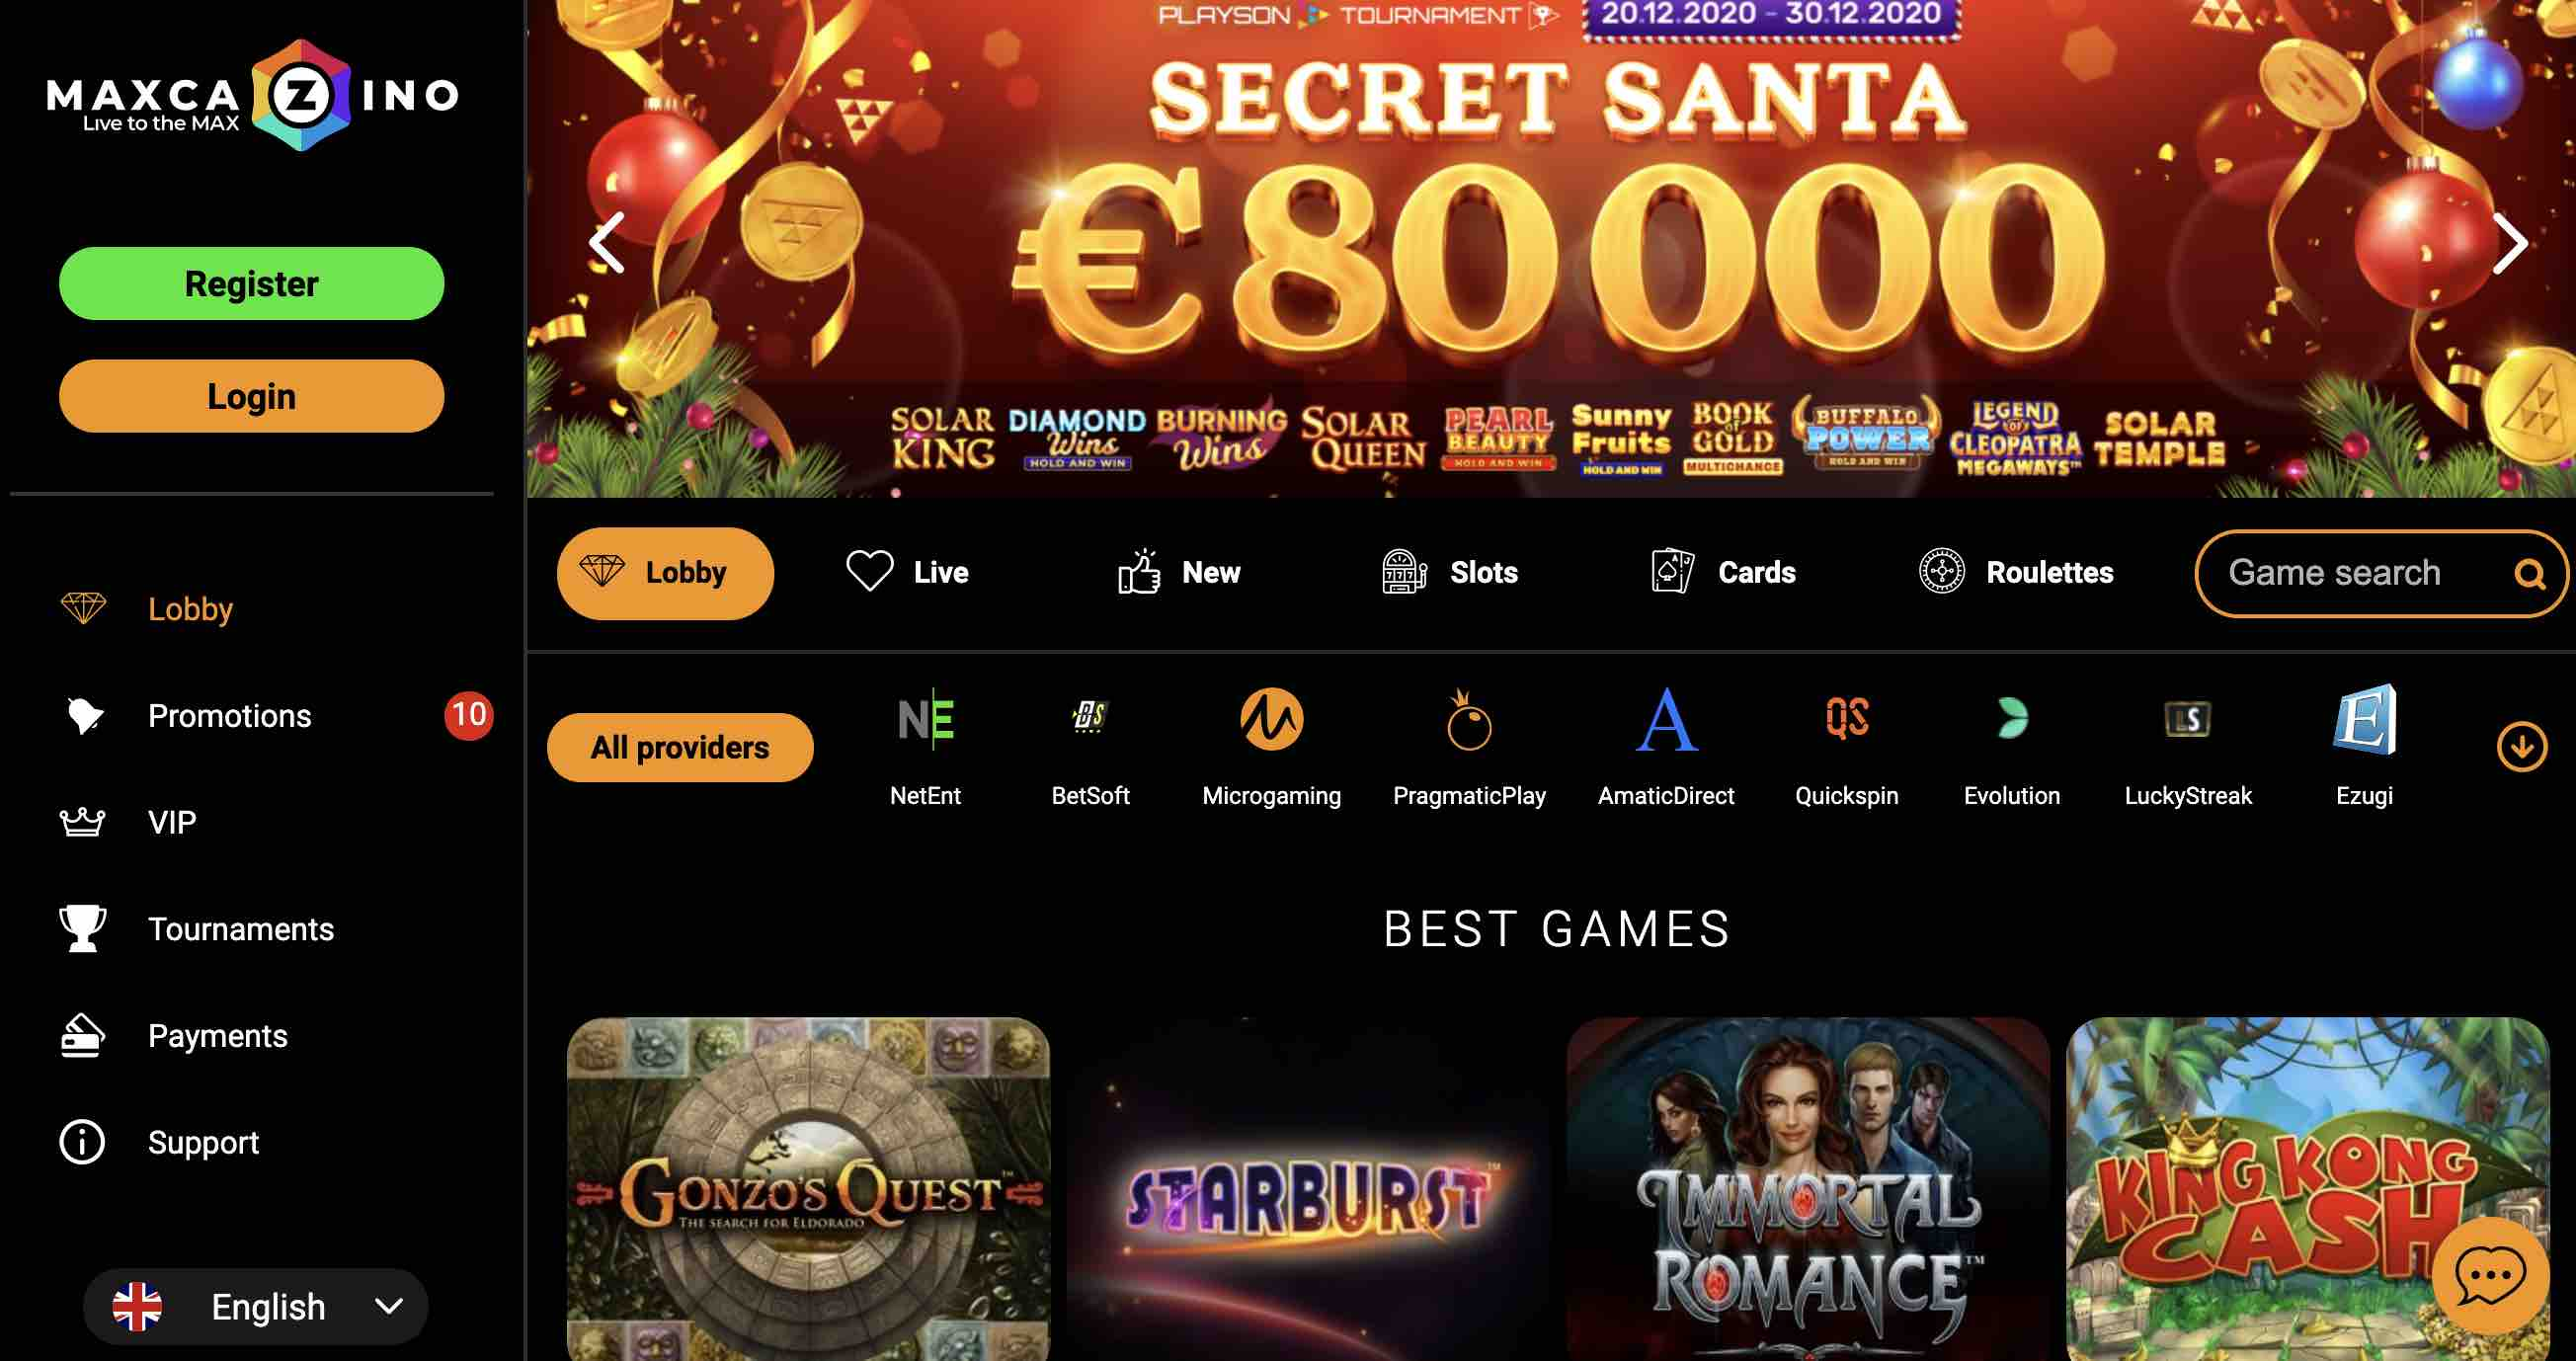 MaxCazino Promotions and Games